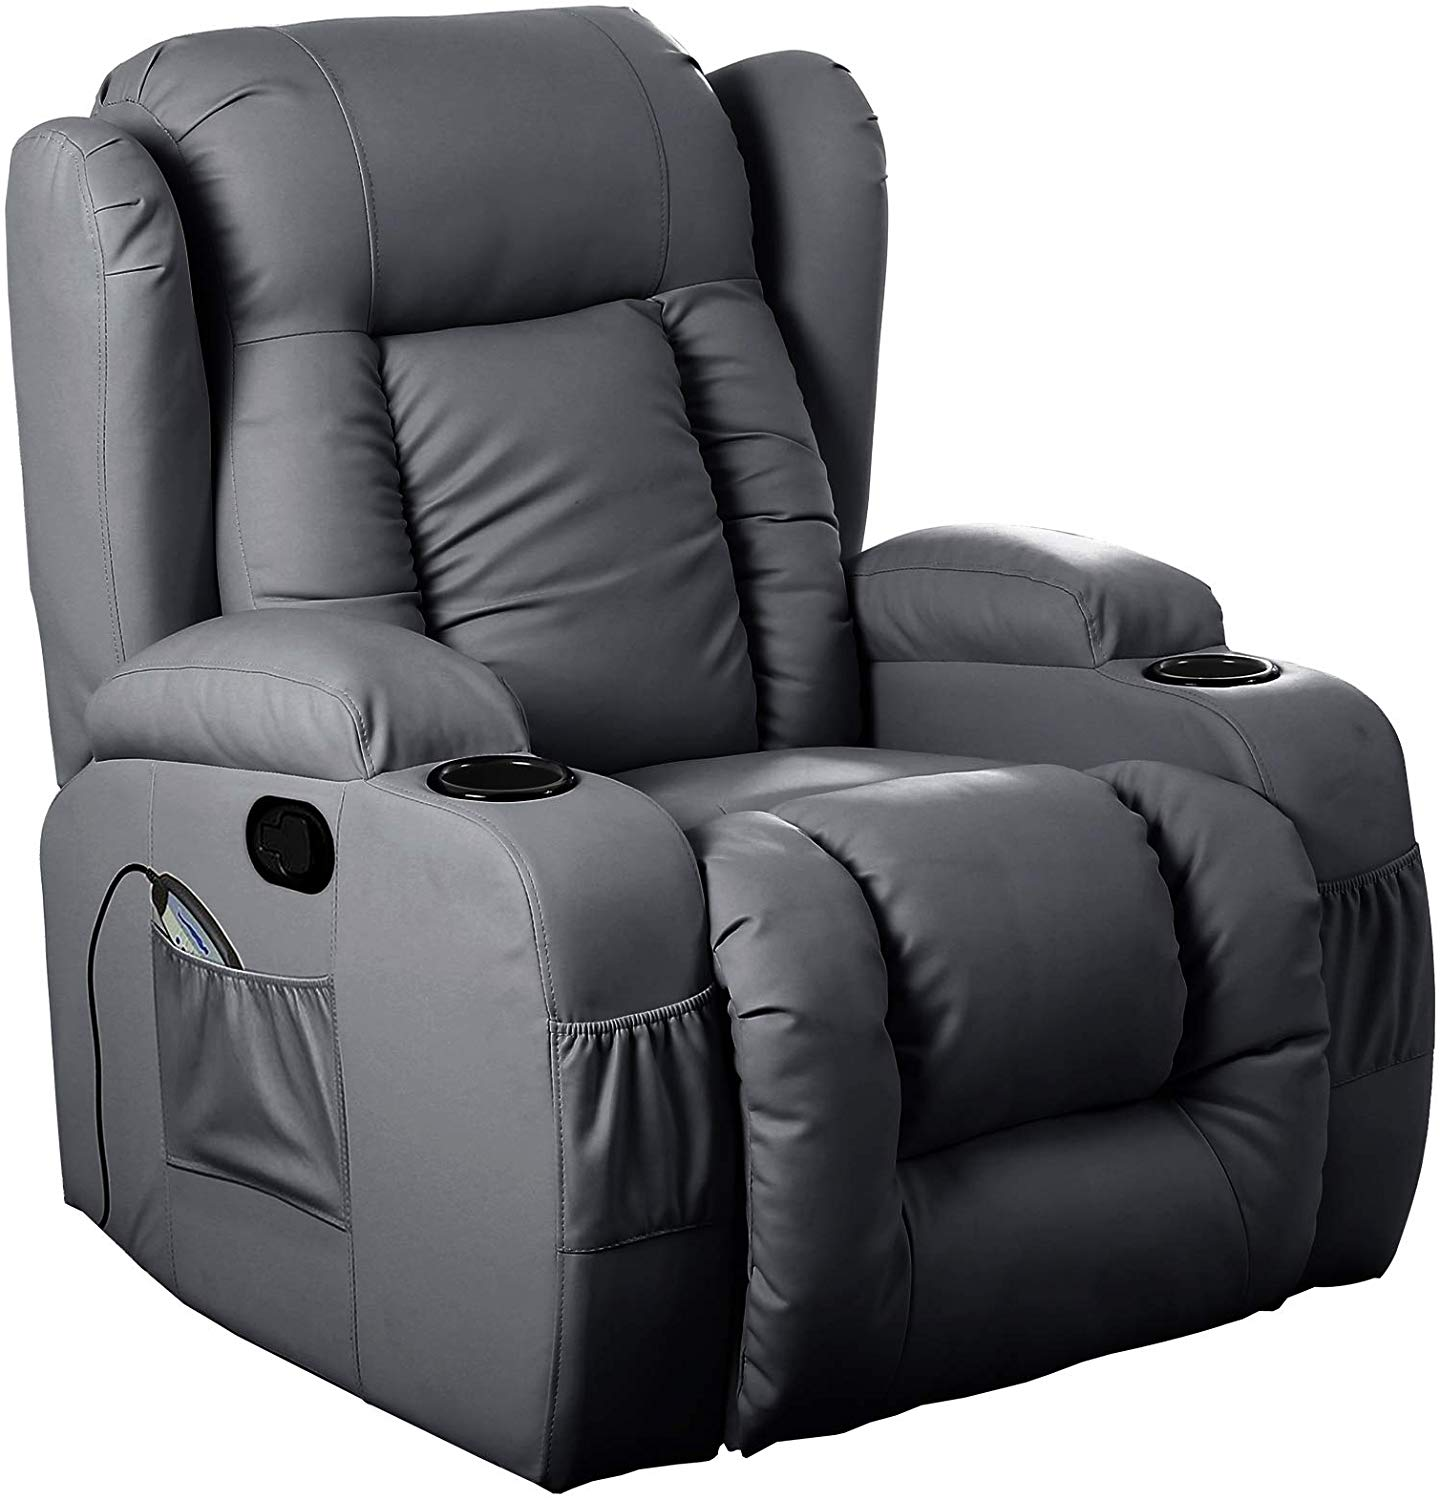 10 IN 1 WINGED LEATHER RECLINER CHAIR ROCKING MASSAGE SWIVEL HEATED GAMING ARMCHAIR